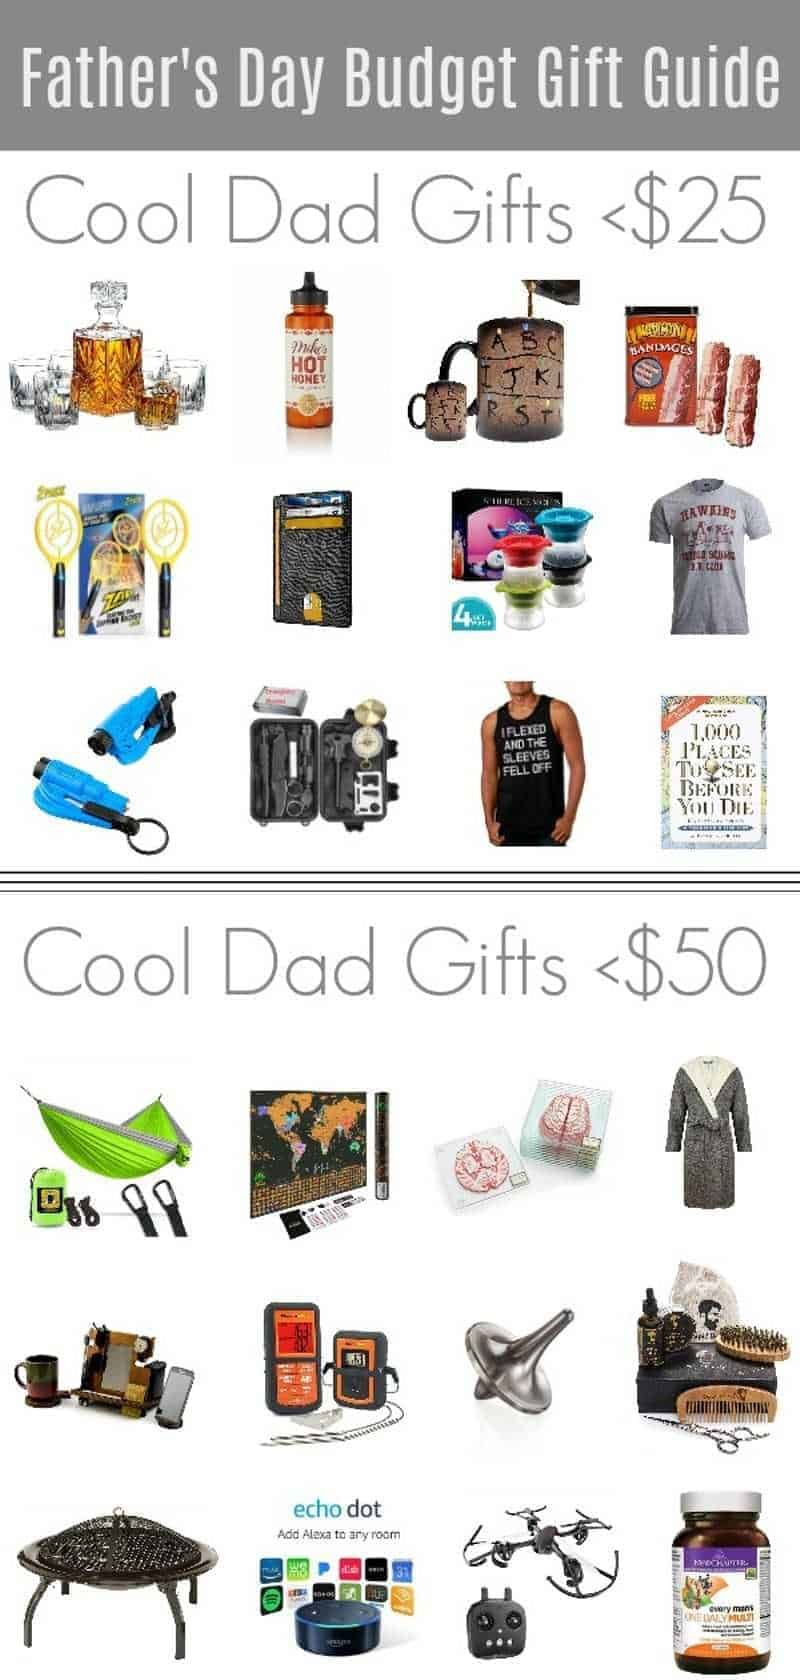 Unique Christmas Gifts For Dad 2020 24 Cheap and Unique Father's Day Gifts of 2020 (Sorry, Cool Dads